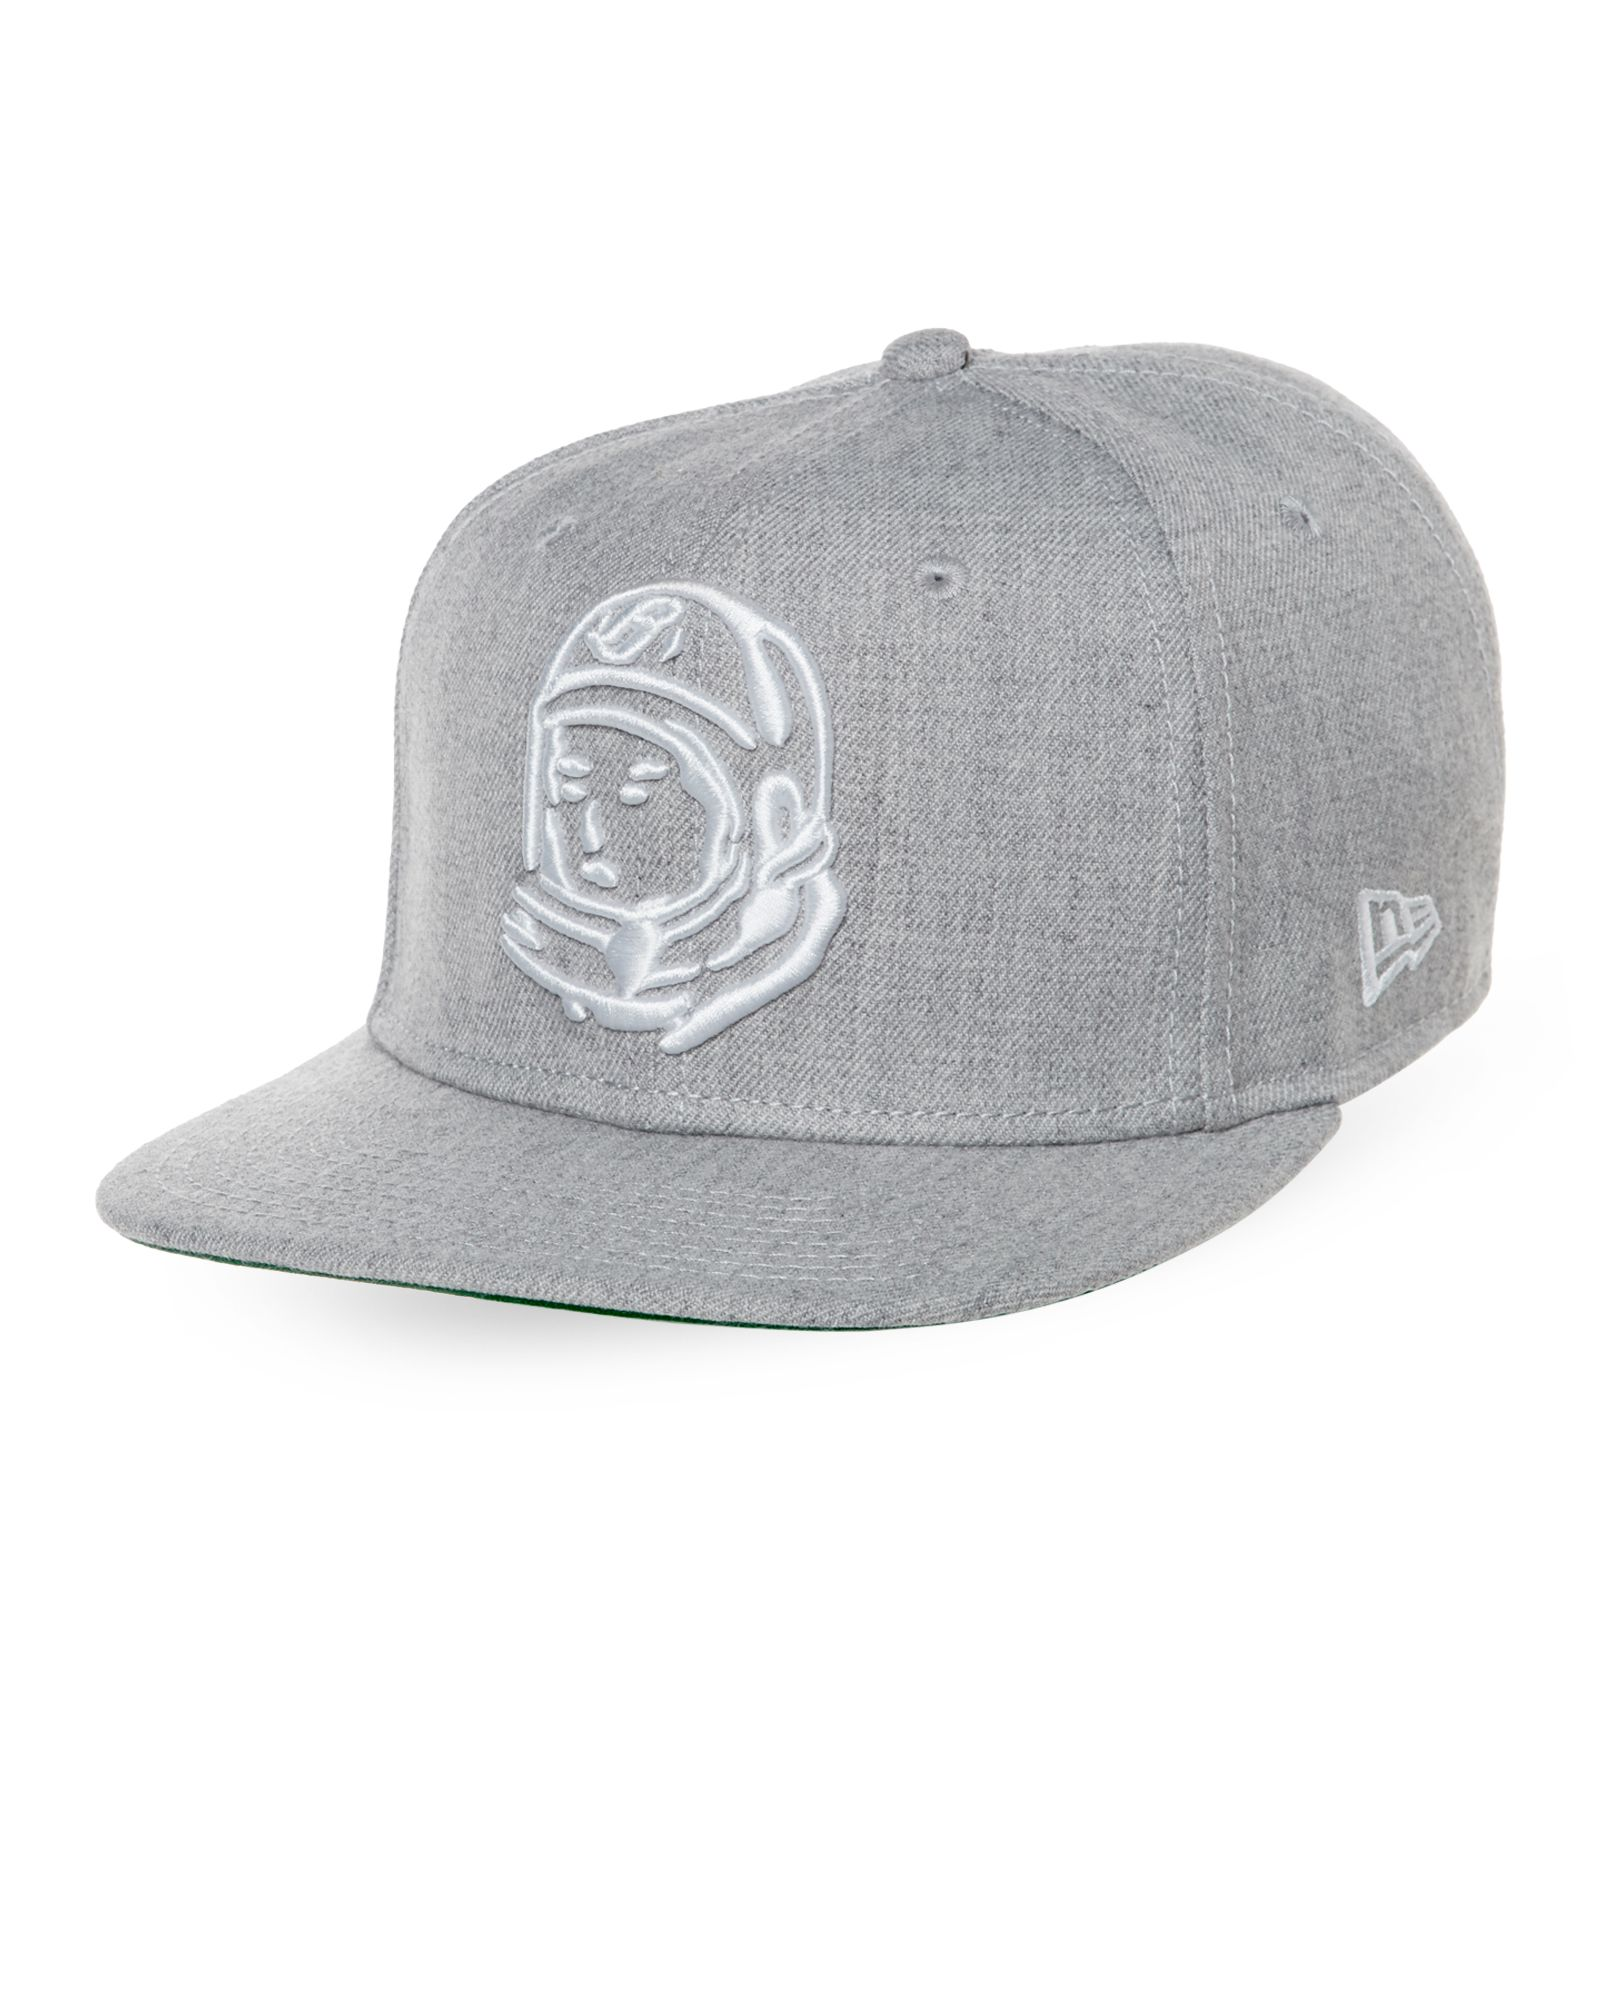 88de9f2a6ad Billionaire Boys Club Heather Grey Astronaut Logo Baseball Cap